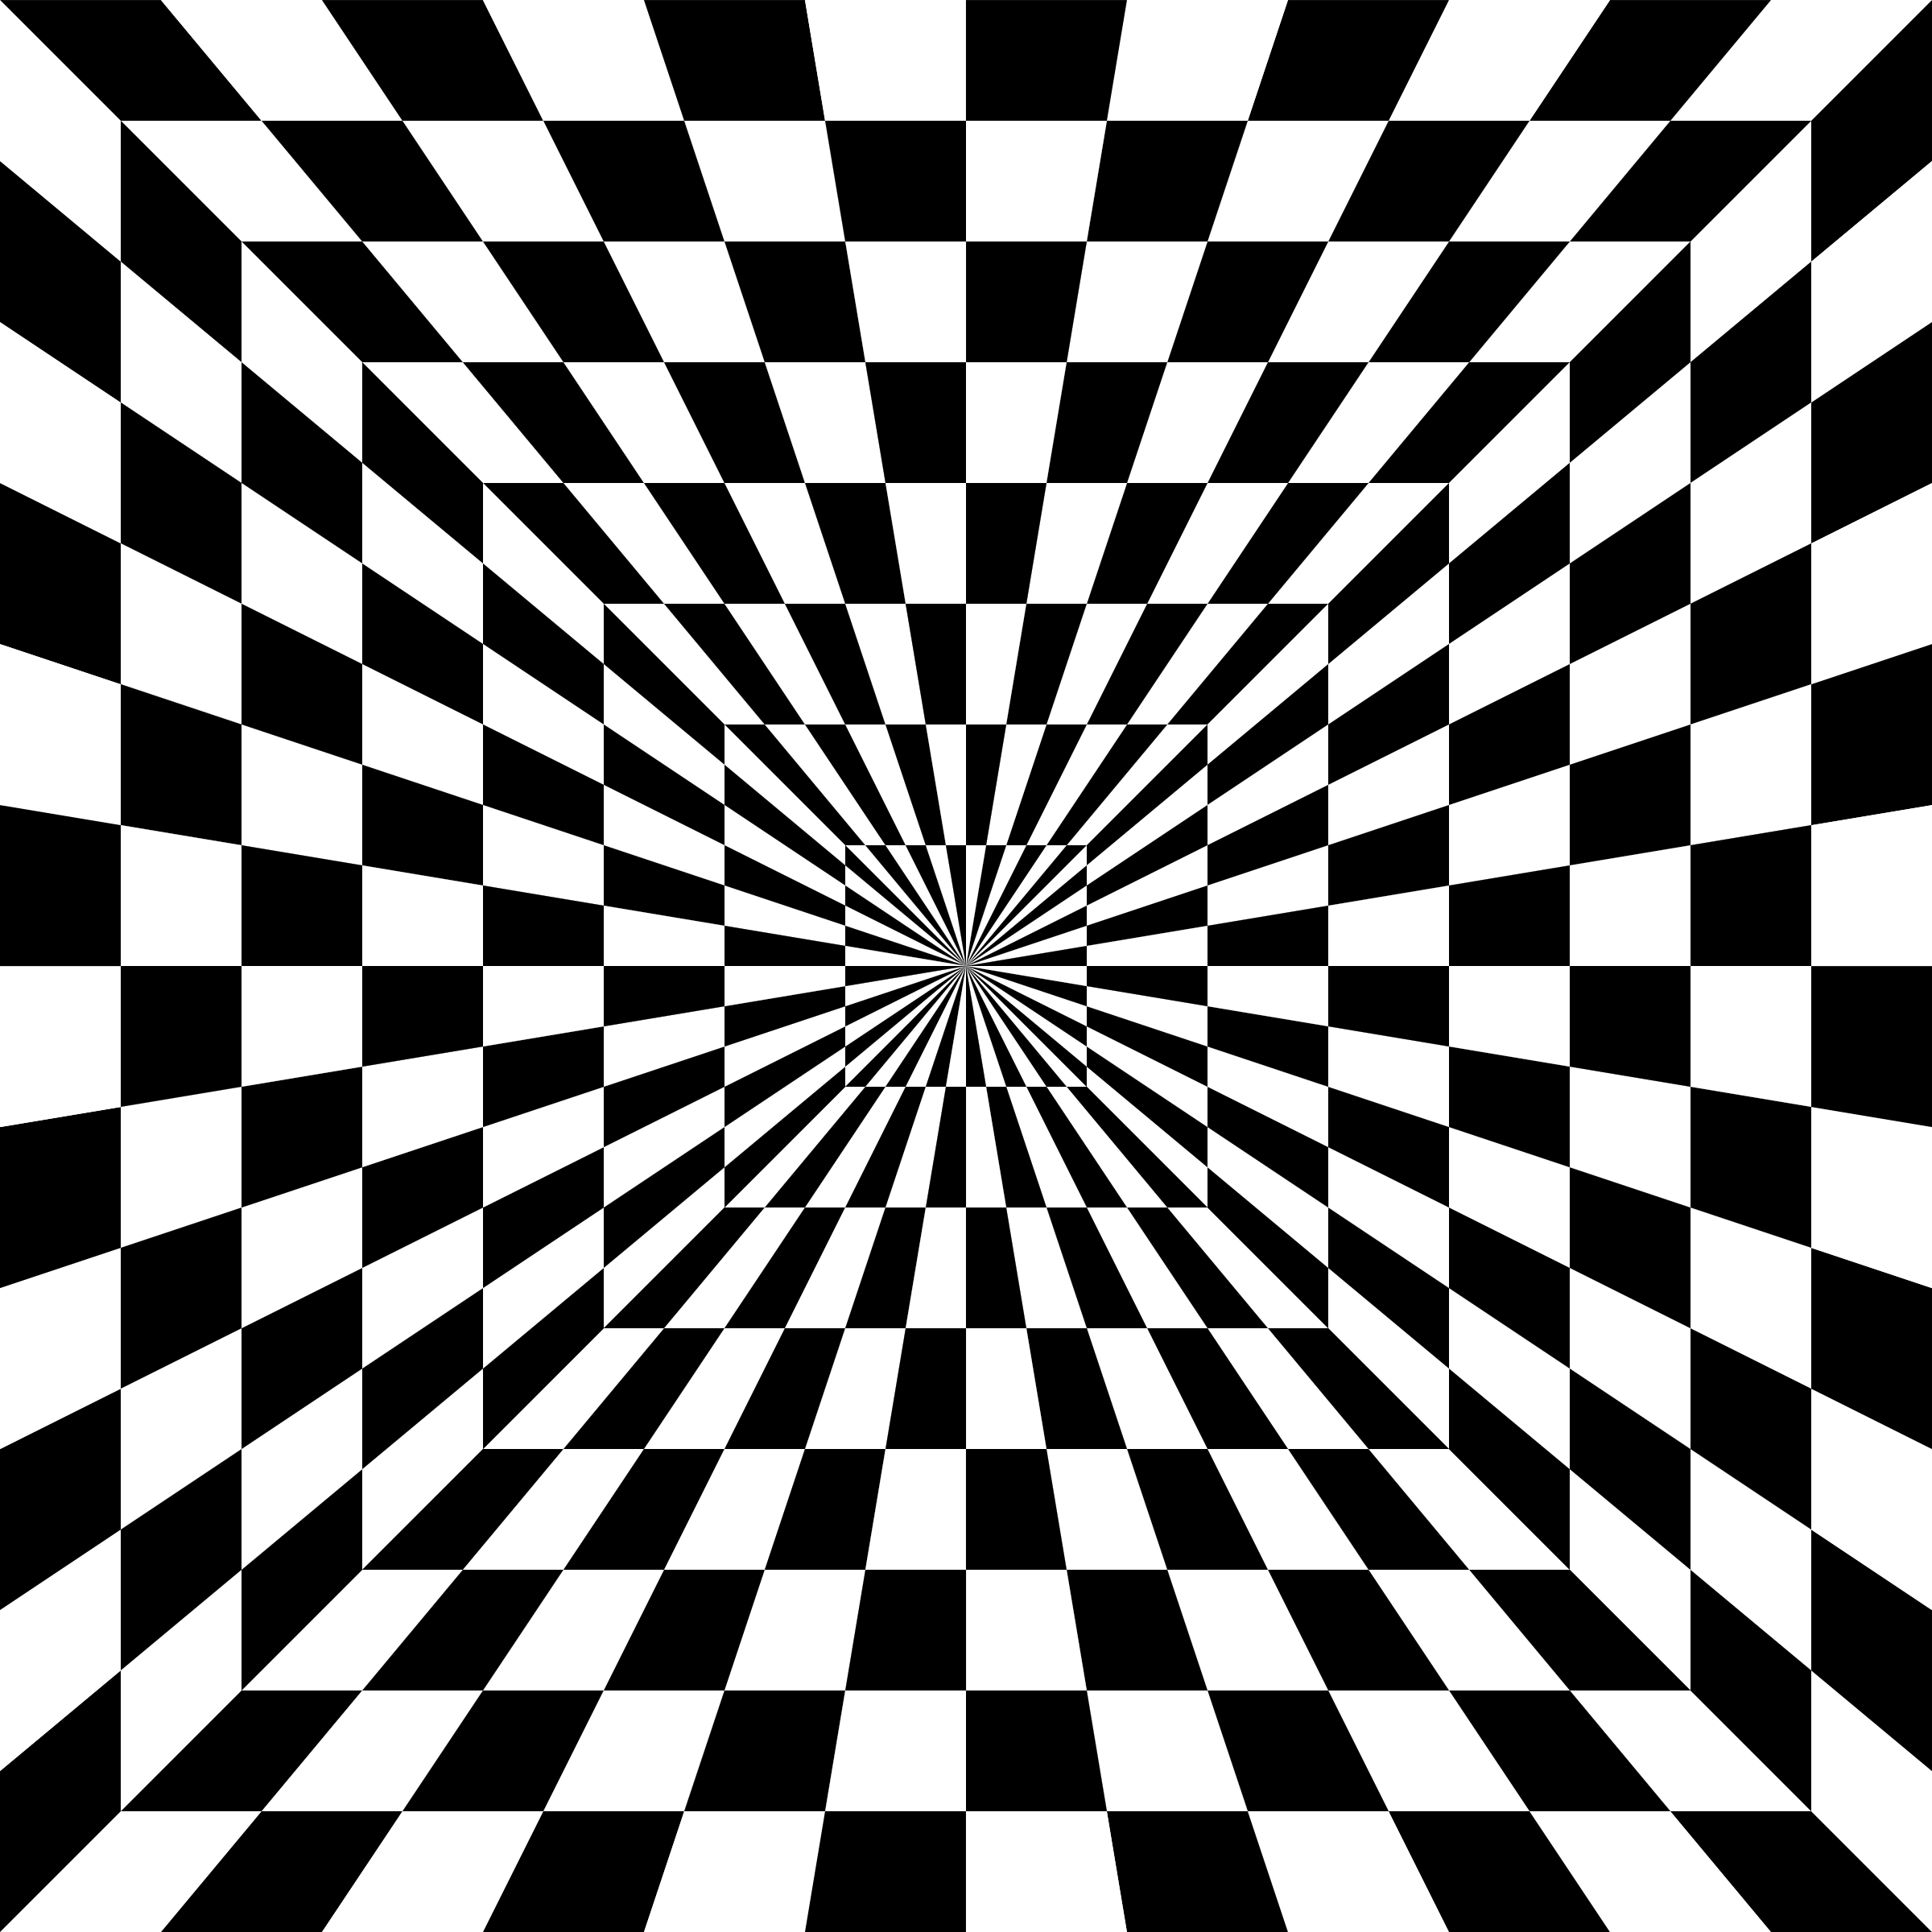 chessboard tunnel by 10binary